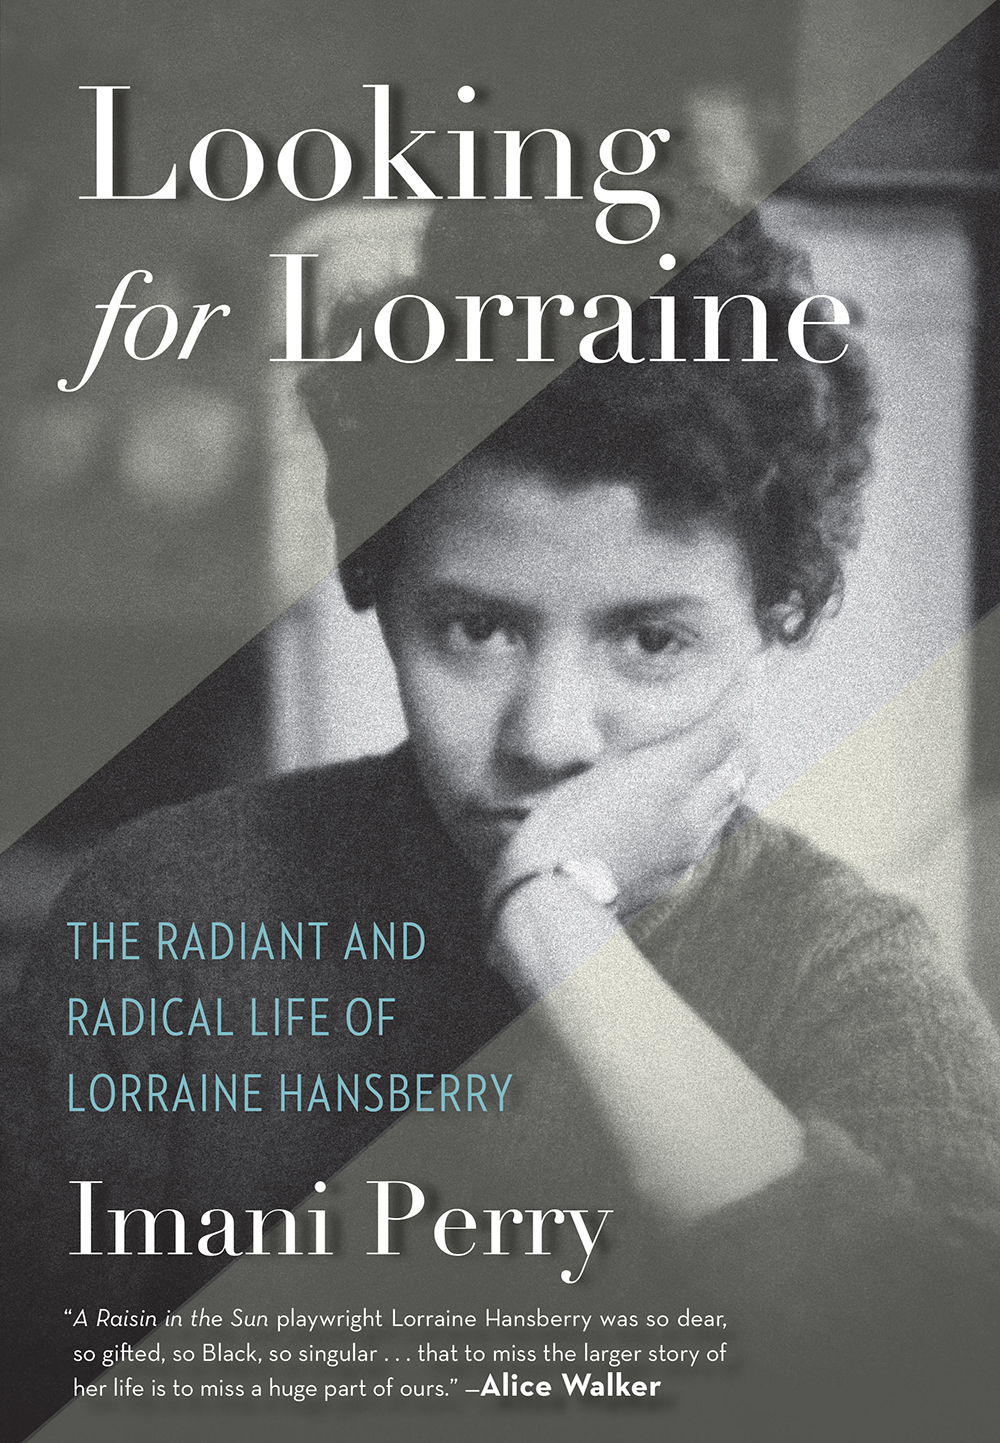 image of book cover of Looking for Lorraine by Imani Perry (Beacon Press, 2018)